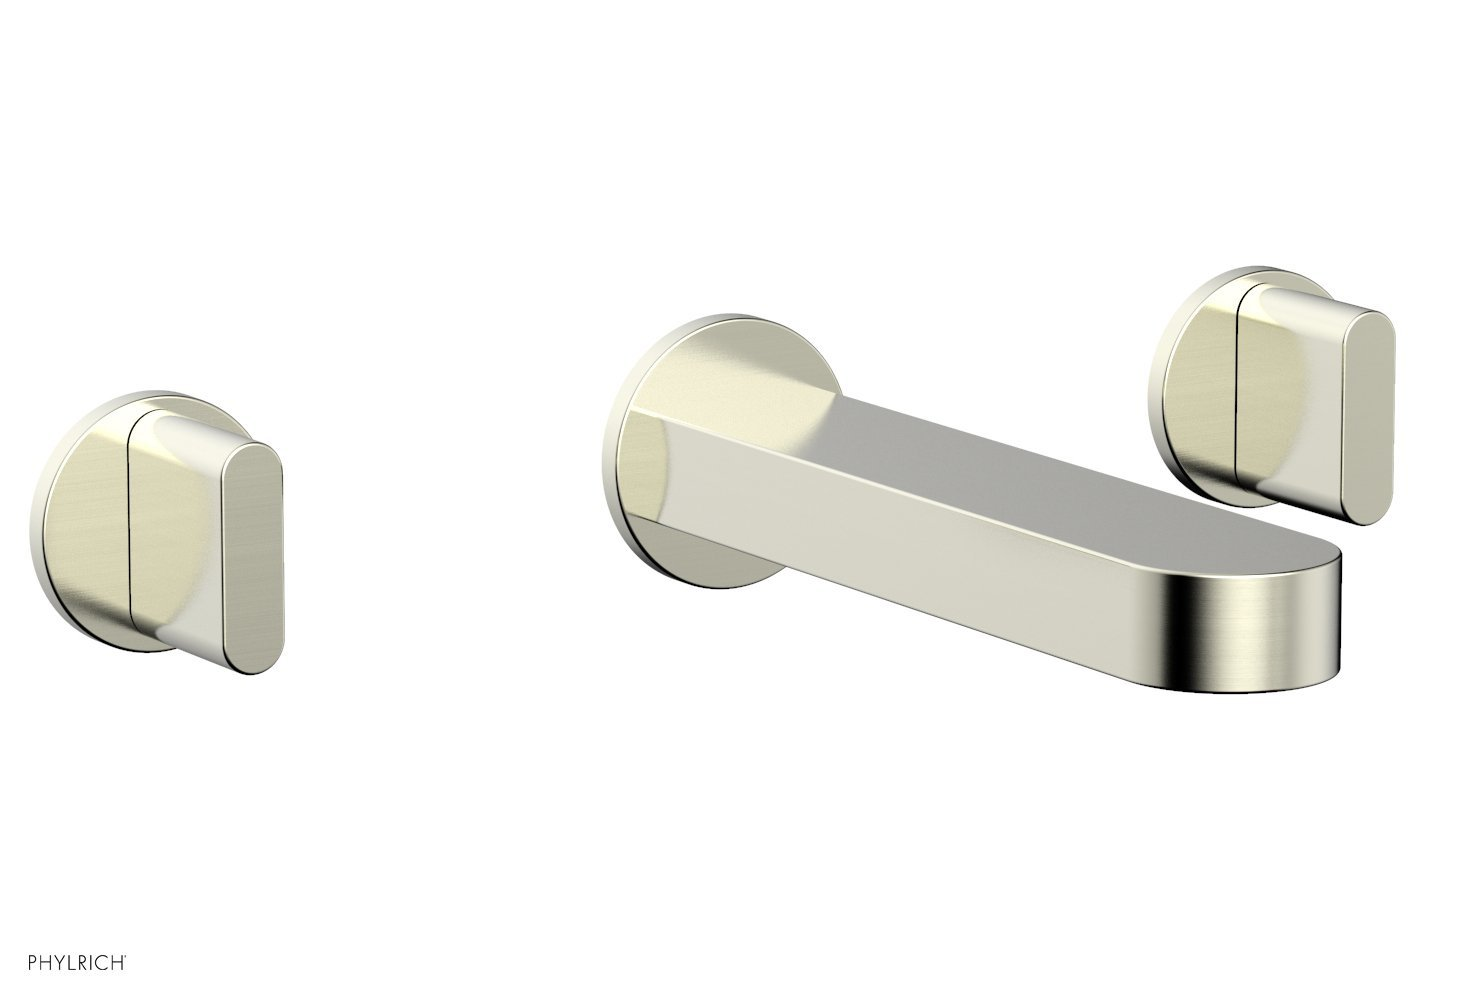 Phylrich 183-11-015 ROND Wall Lavatory Set - Blade Handles - Satin Nickel